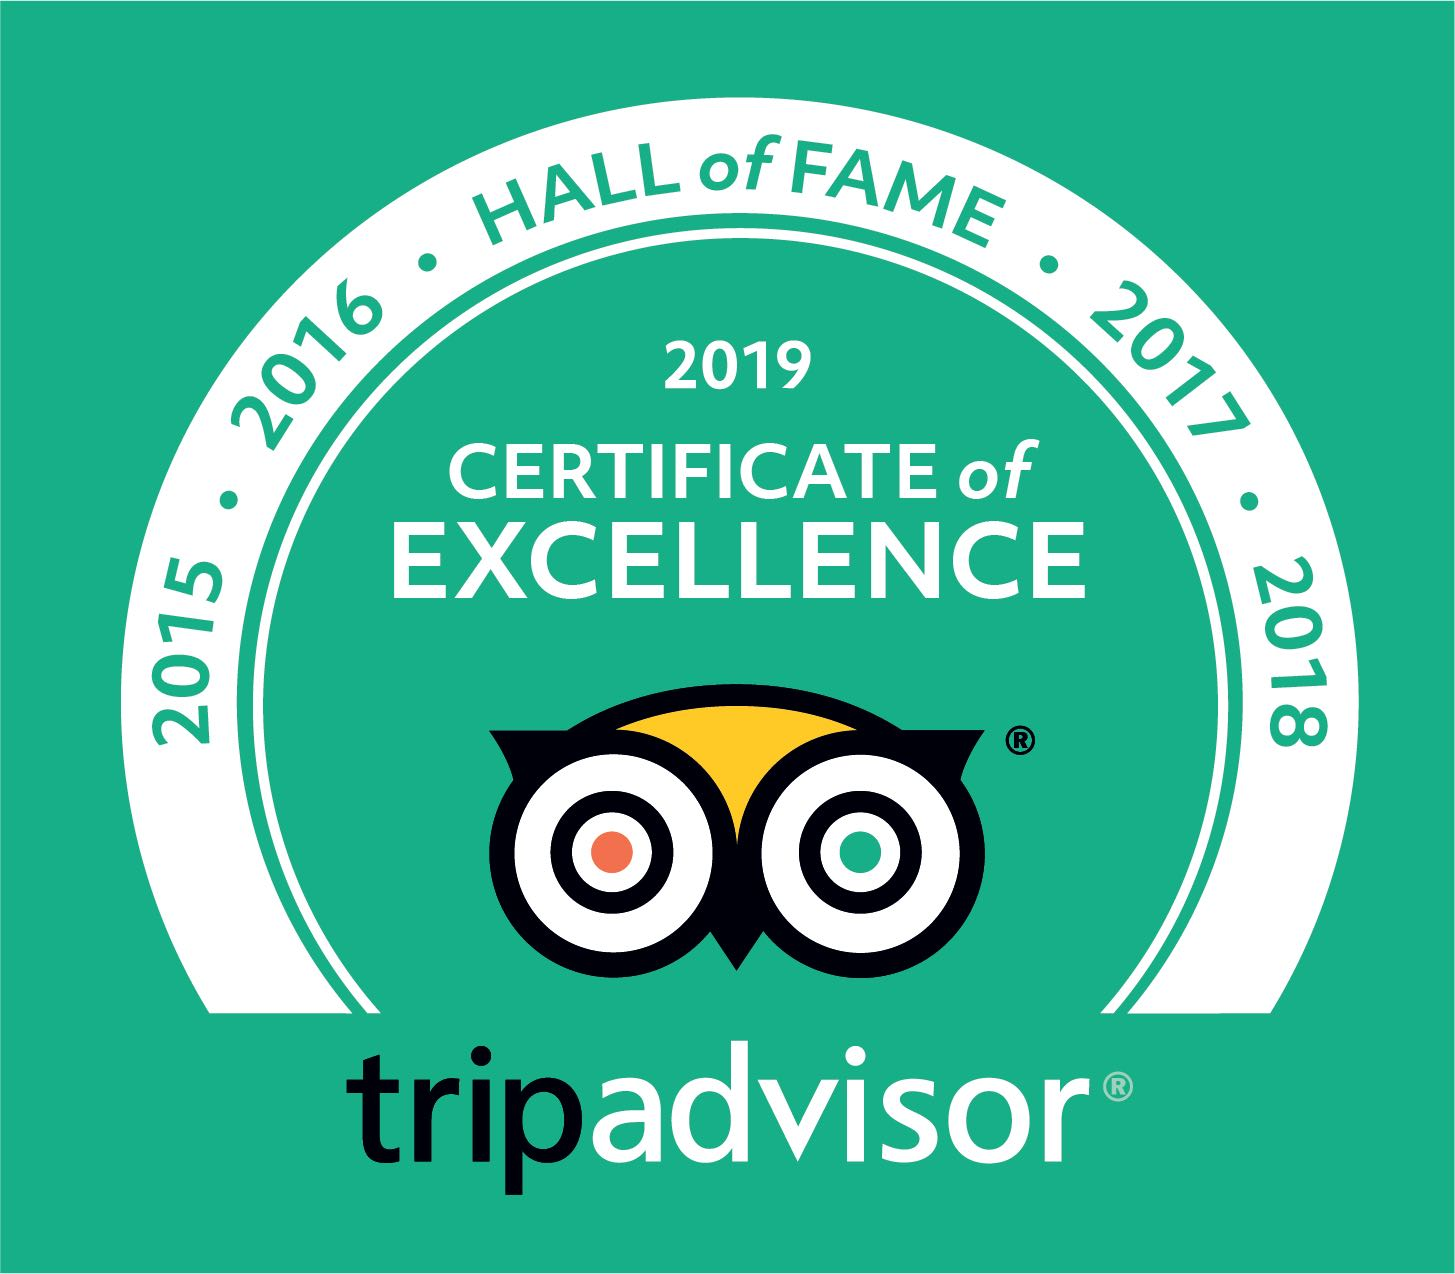 Trip Advisor Certifivate of Excellence